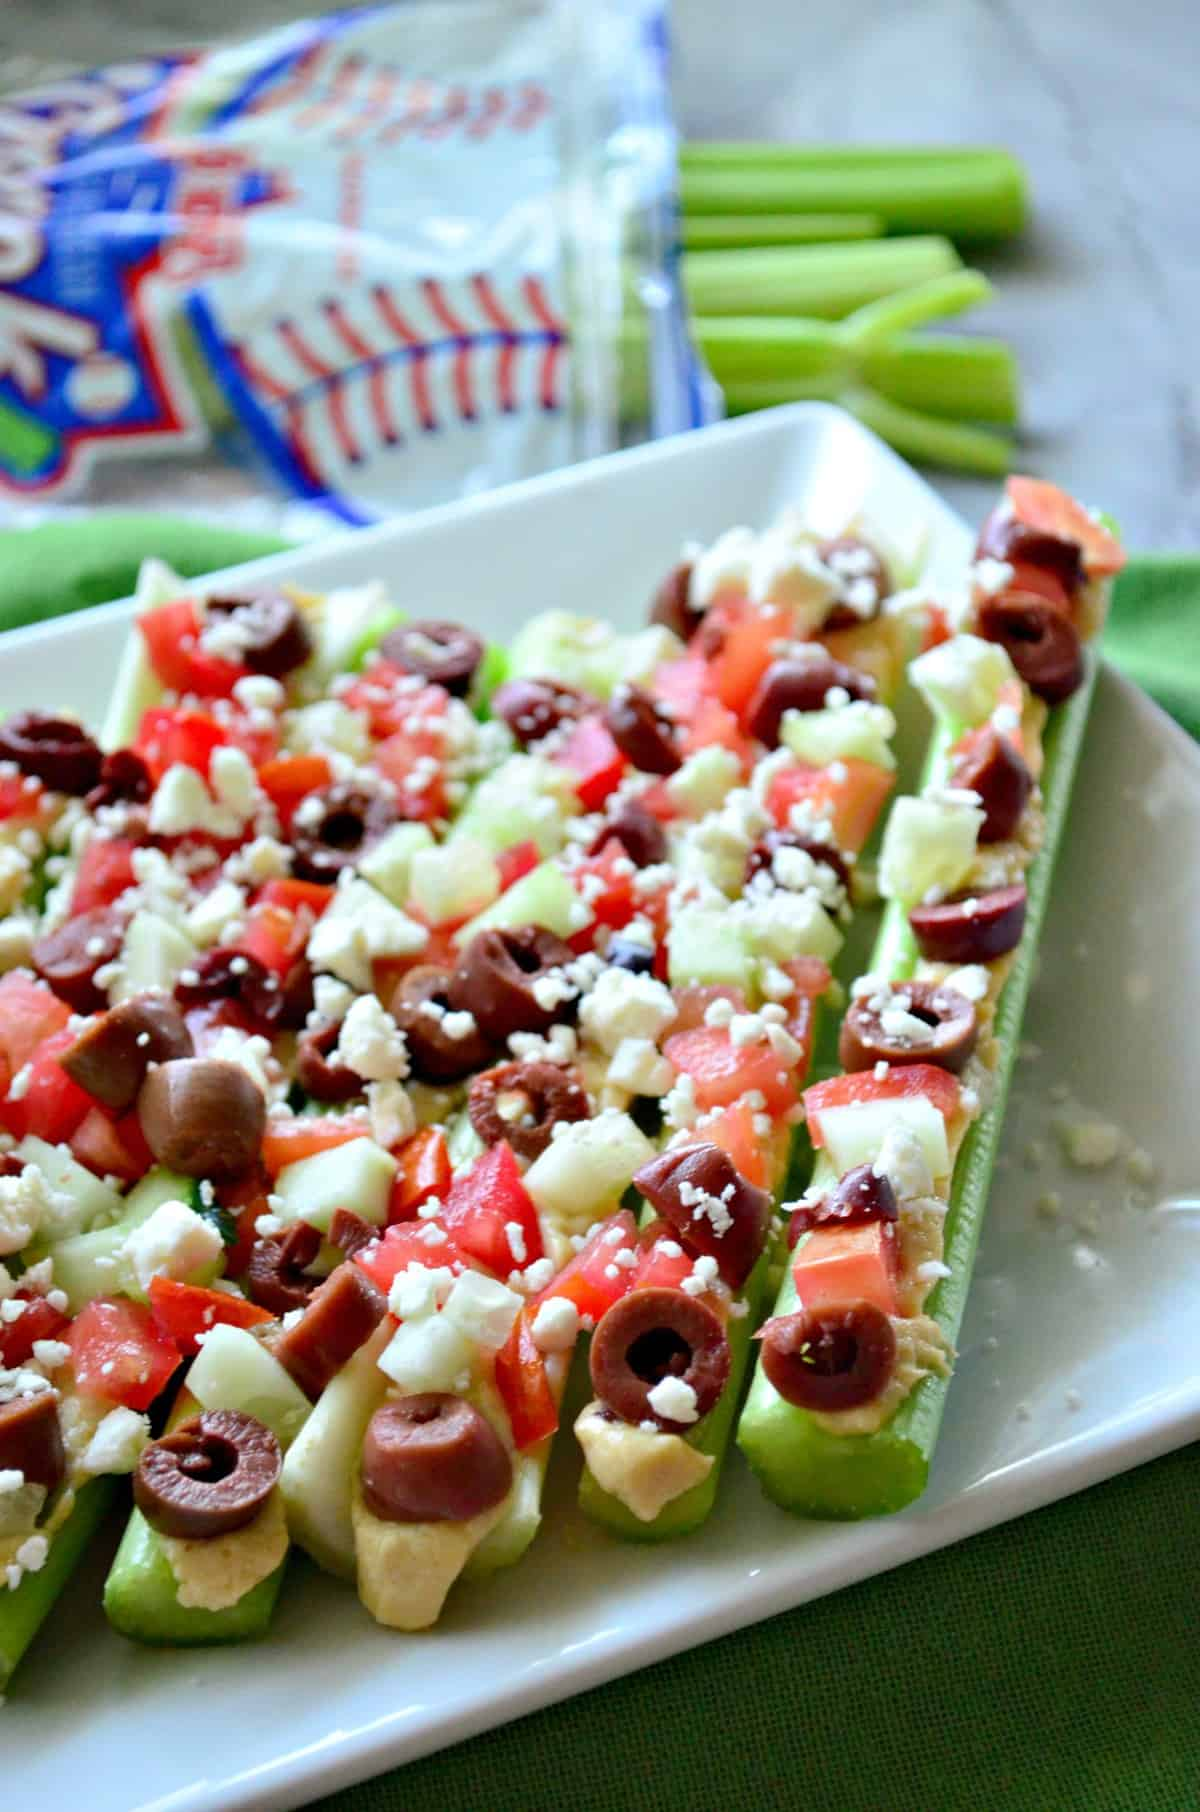 Plated celery sticks stuffed with hummus, feta, kalamata, and tomato with celery blurred in background.